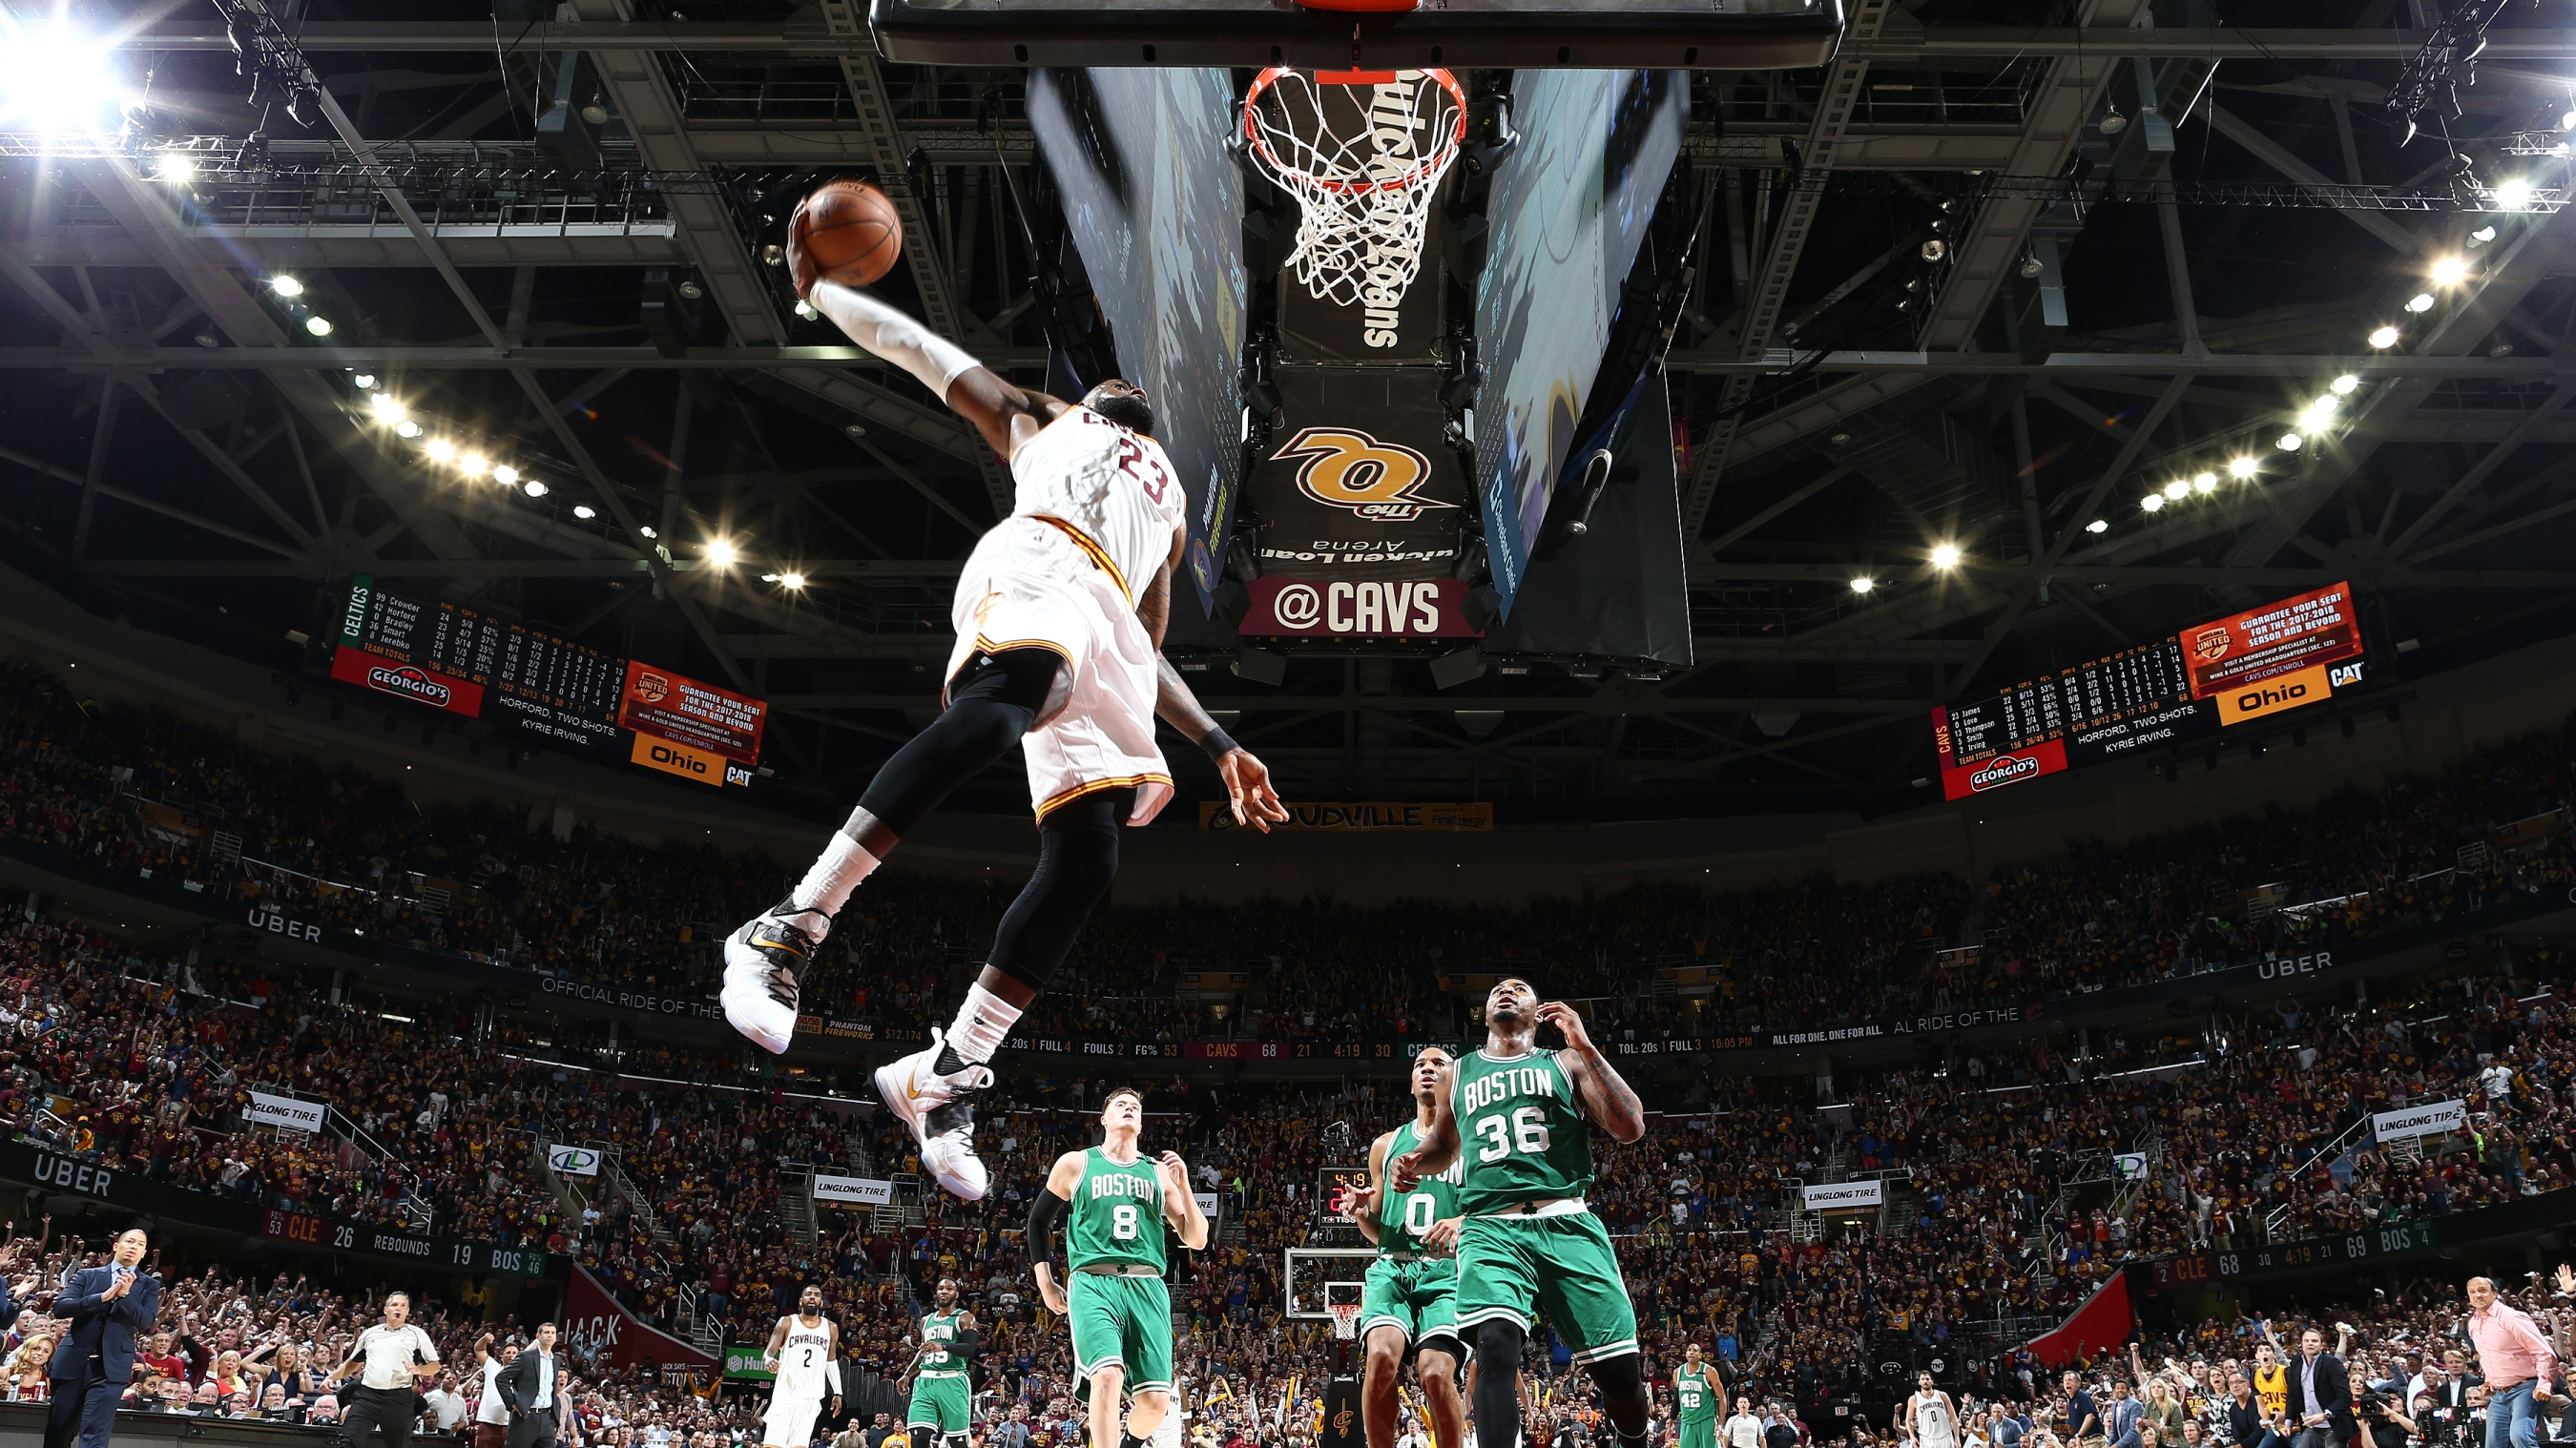 2d1f49353cb0 LeBron James misses dunk in Game 4